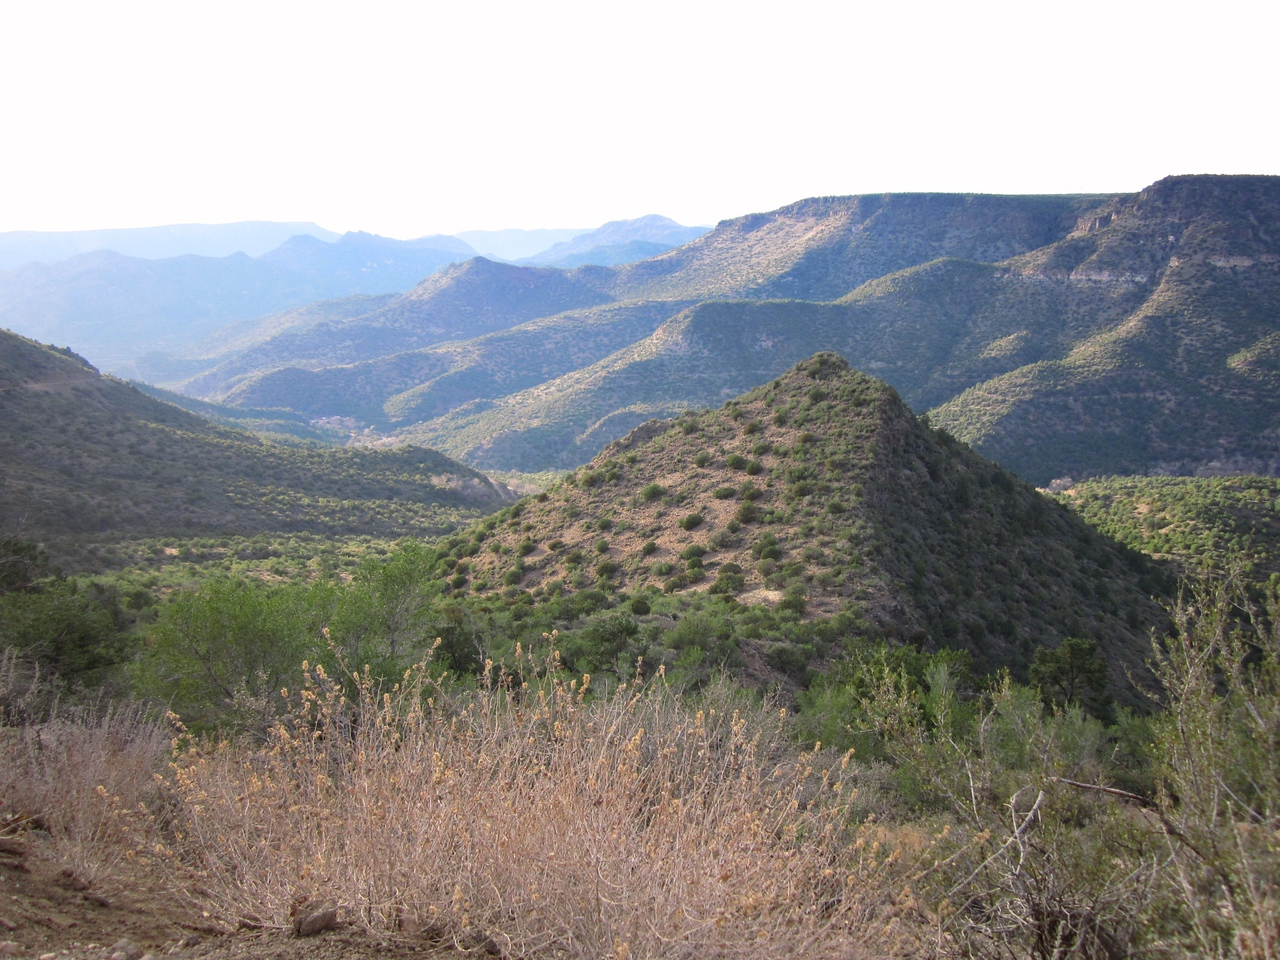 The road up Fossil Creek Canyon is beautiful, and ends at the town of Strawberry.